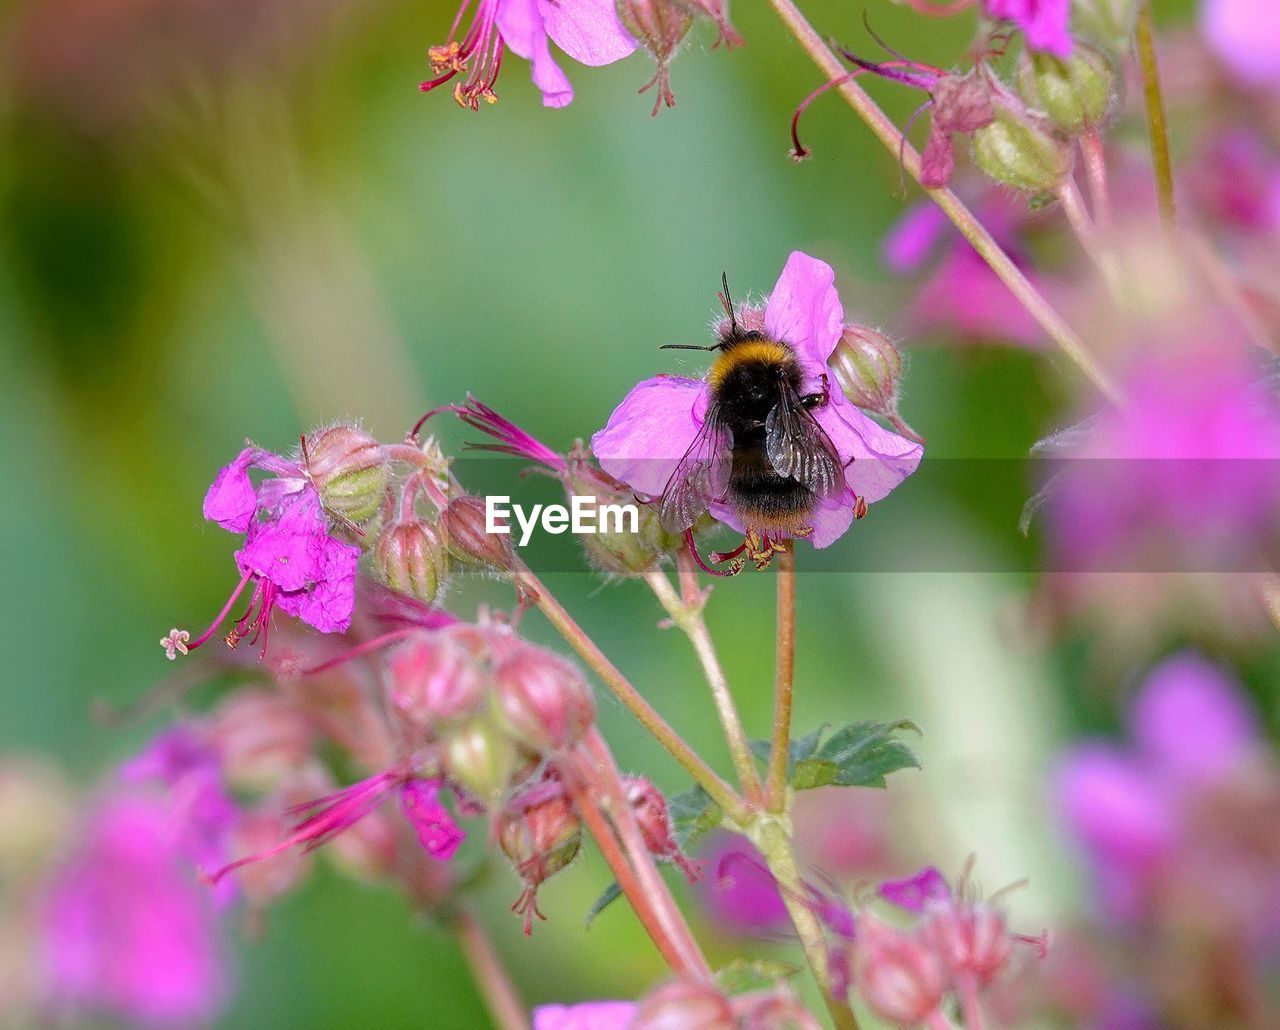 flowering plant, flower, animal themes, invertebrate, insect, one animal, animals in the wild, animal, plant, animal wildlife, bee, beauty in nature, fragility, pollination, petal, growth, flower head, vulnerability, close-up, freshness, pink color, bumblebee, no people, purple